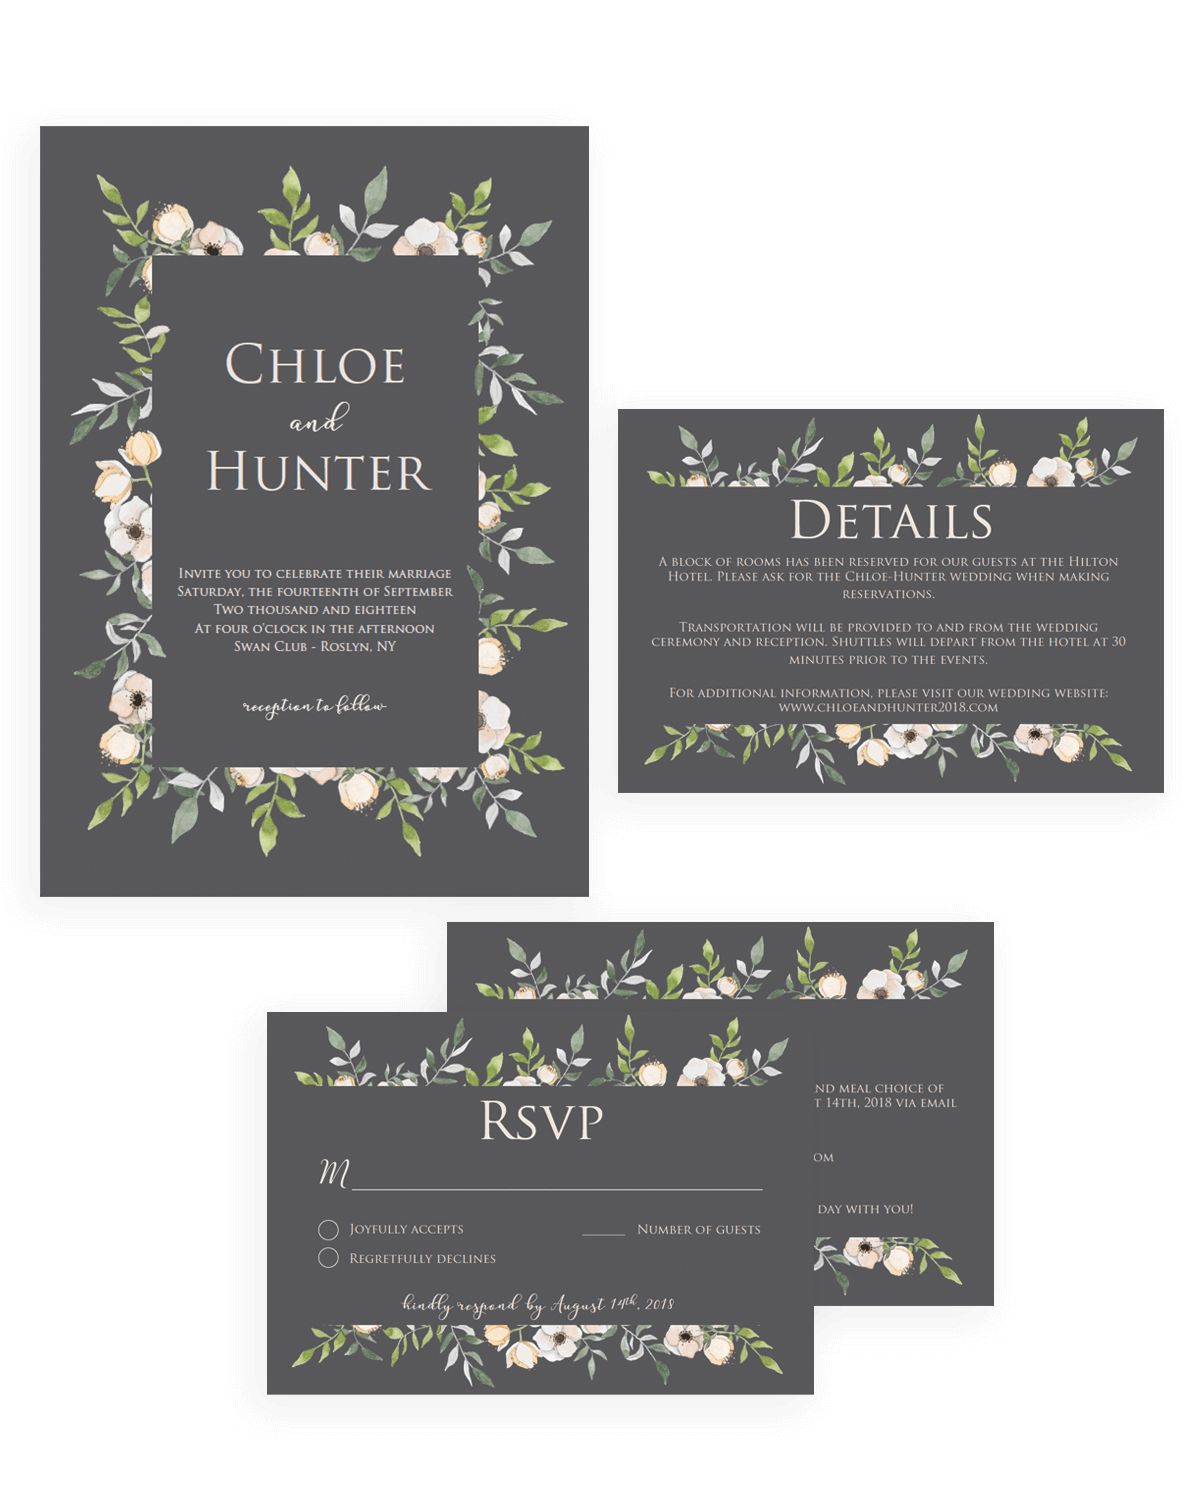 Unique wedding invitation sets easy to use templates papersizzle grey and blush greenery wedding invitation suite template download by papersizzle monicamarmolfo Choice Image